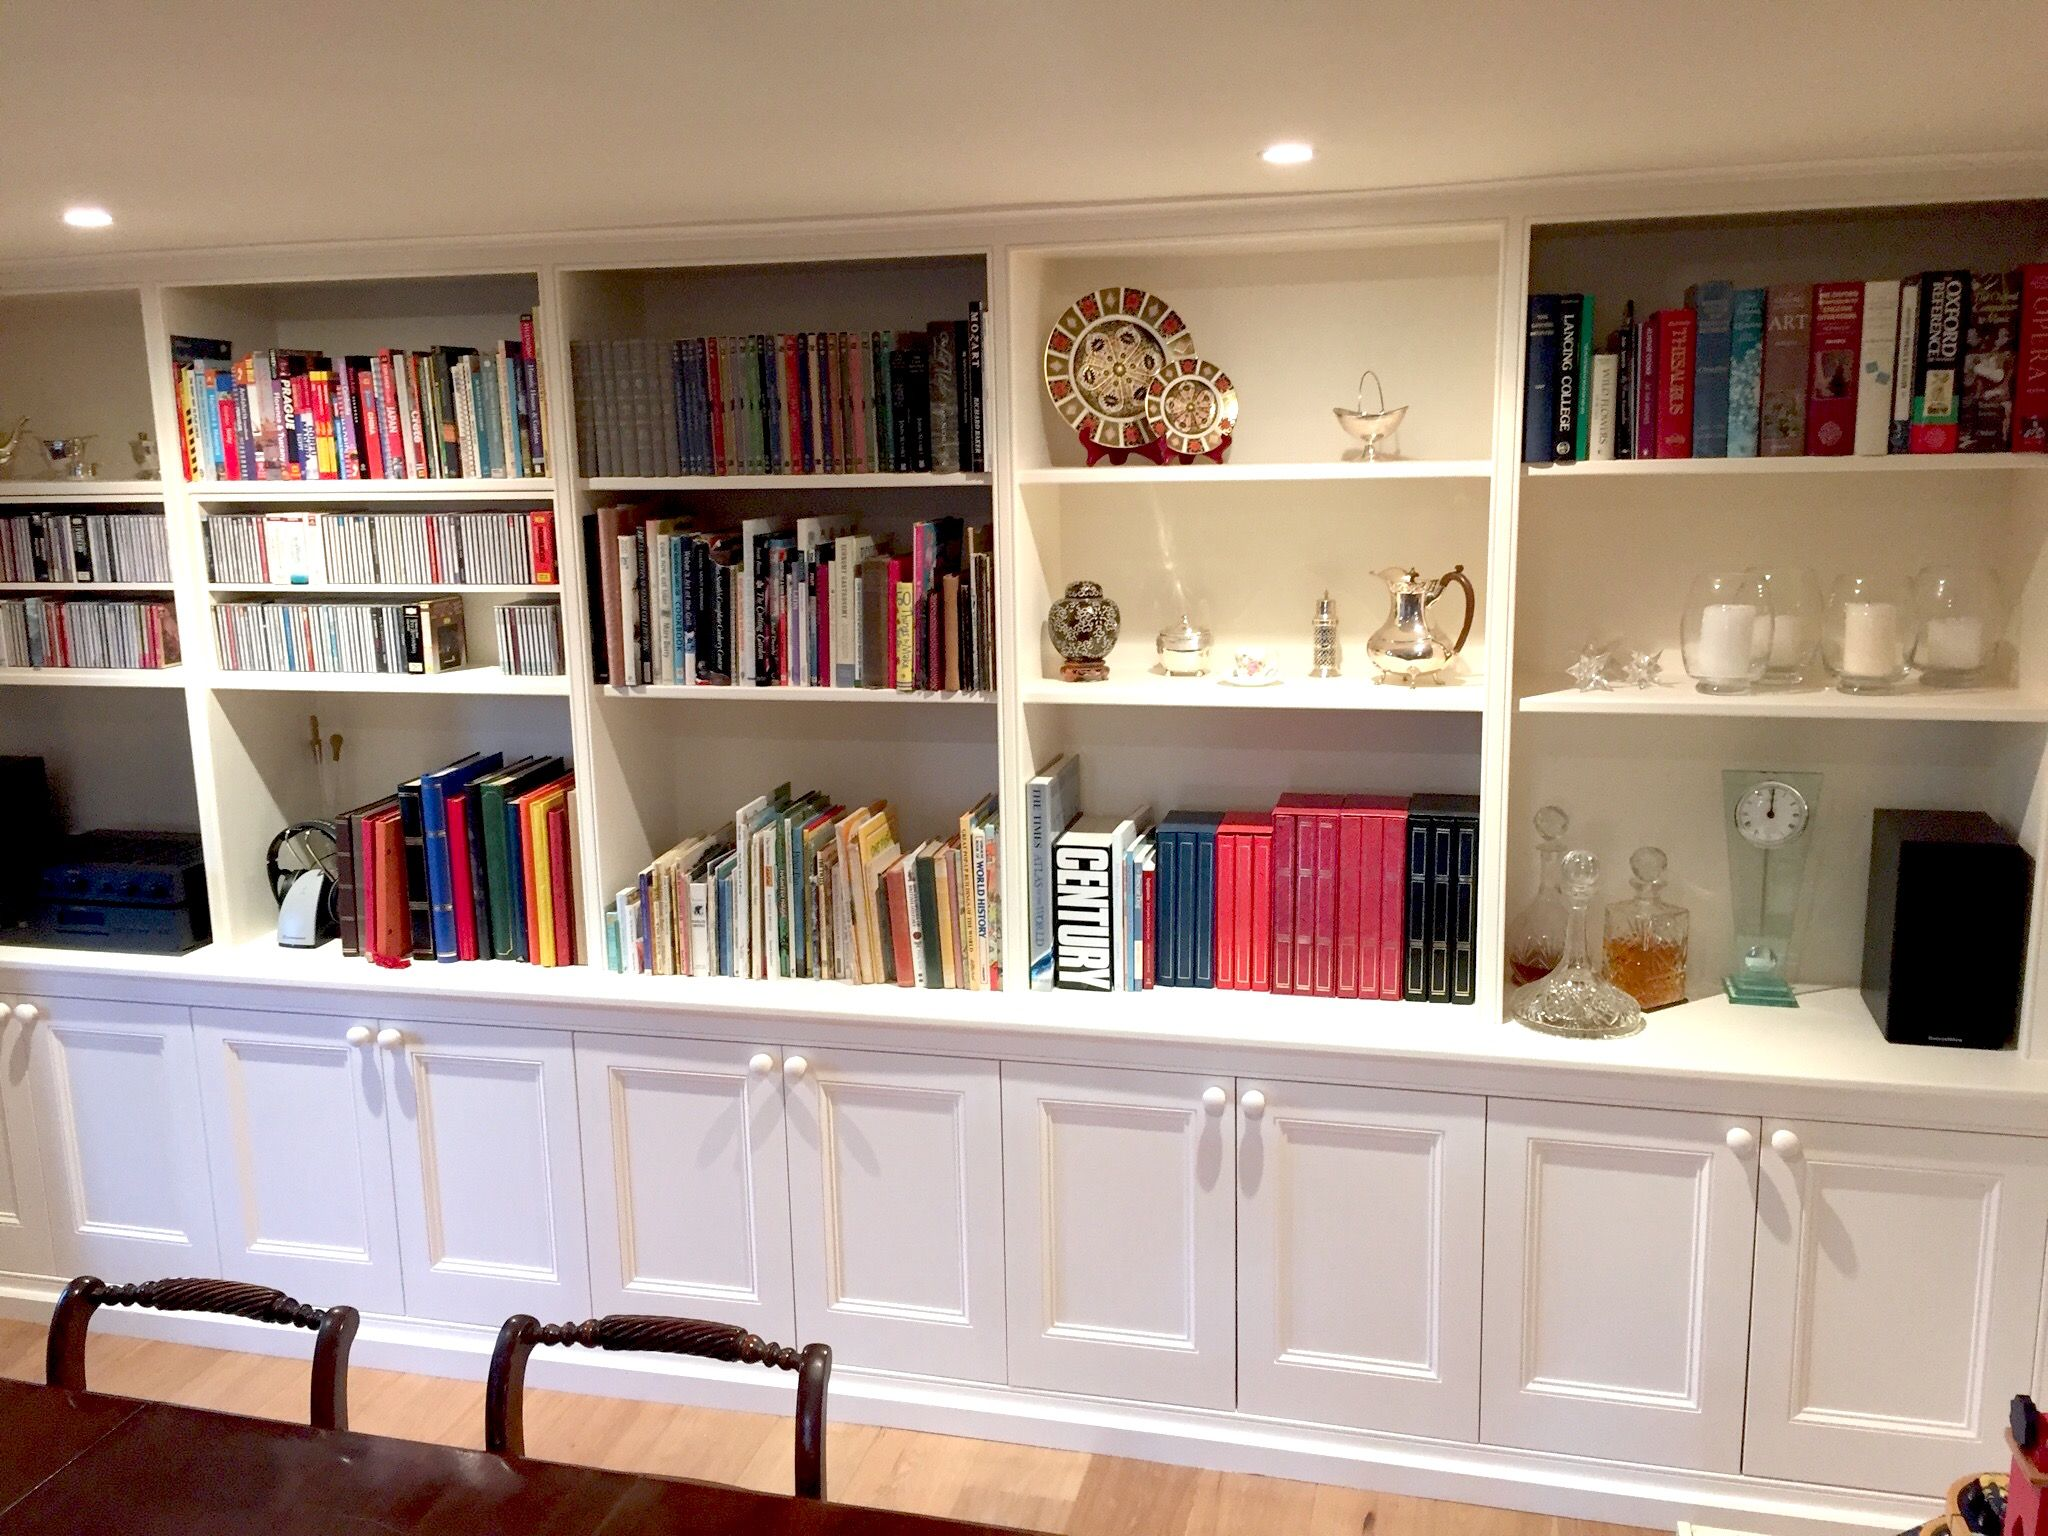 Handmade Shelving And Cabinets By Oliver Hazael Bespoke Carpentry In Bath Uk